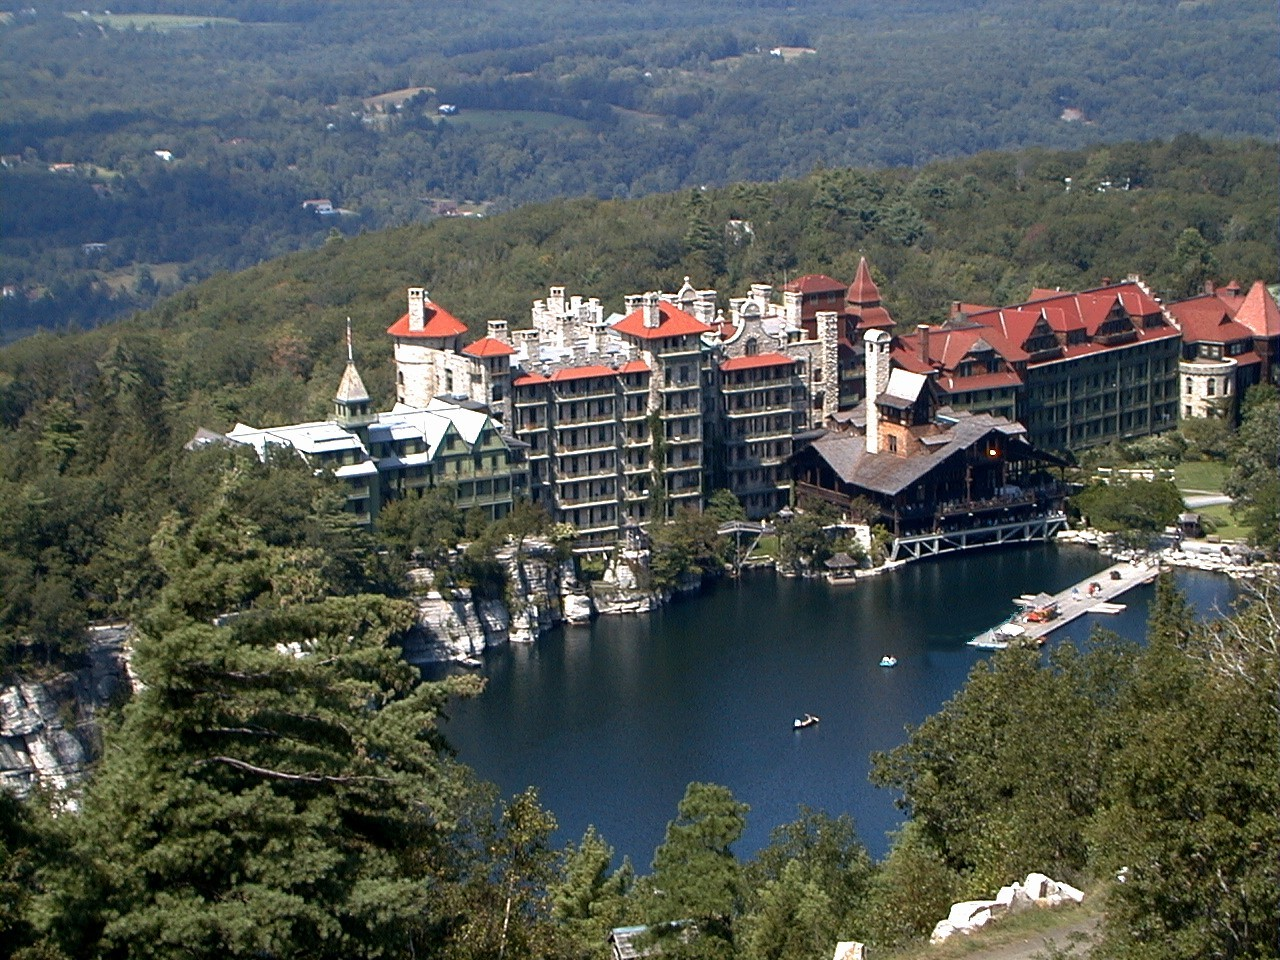 Mohonk Mountain House, New Paltz, New York